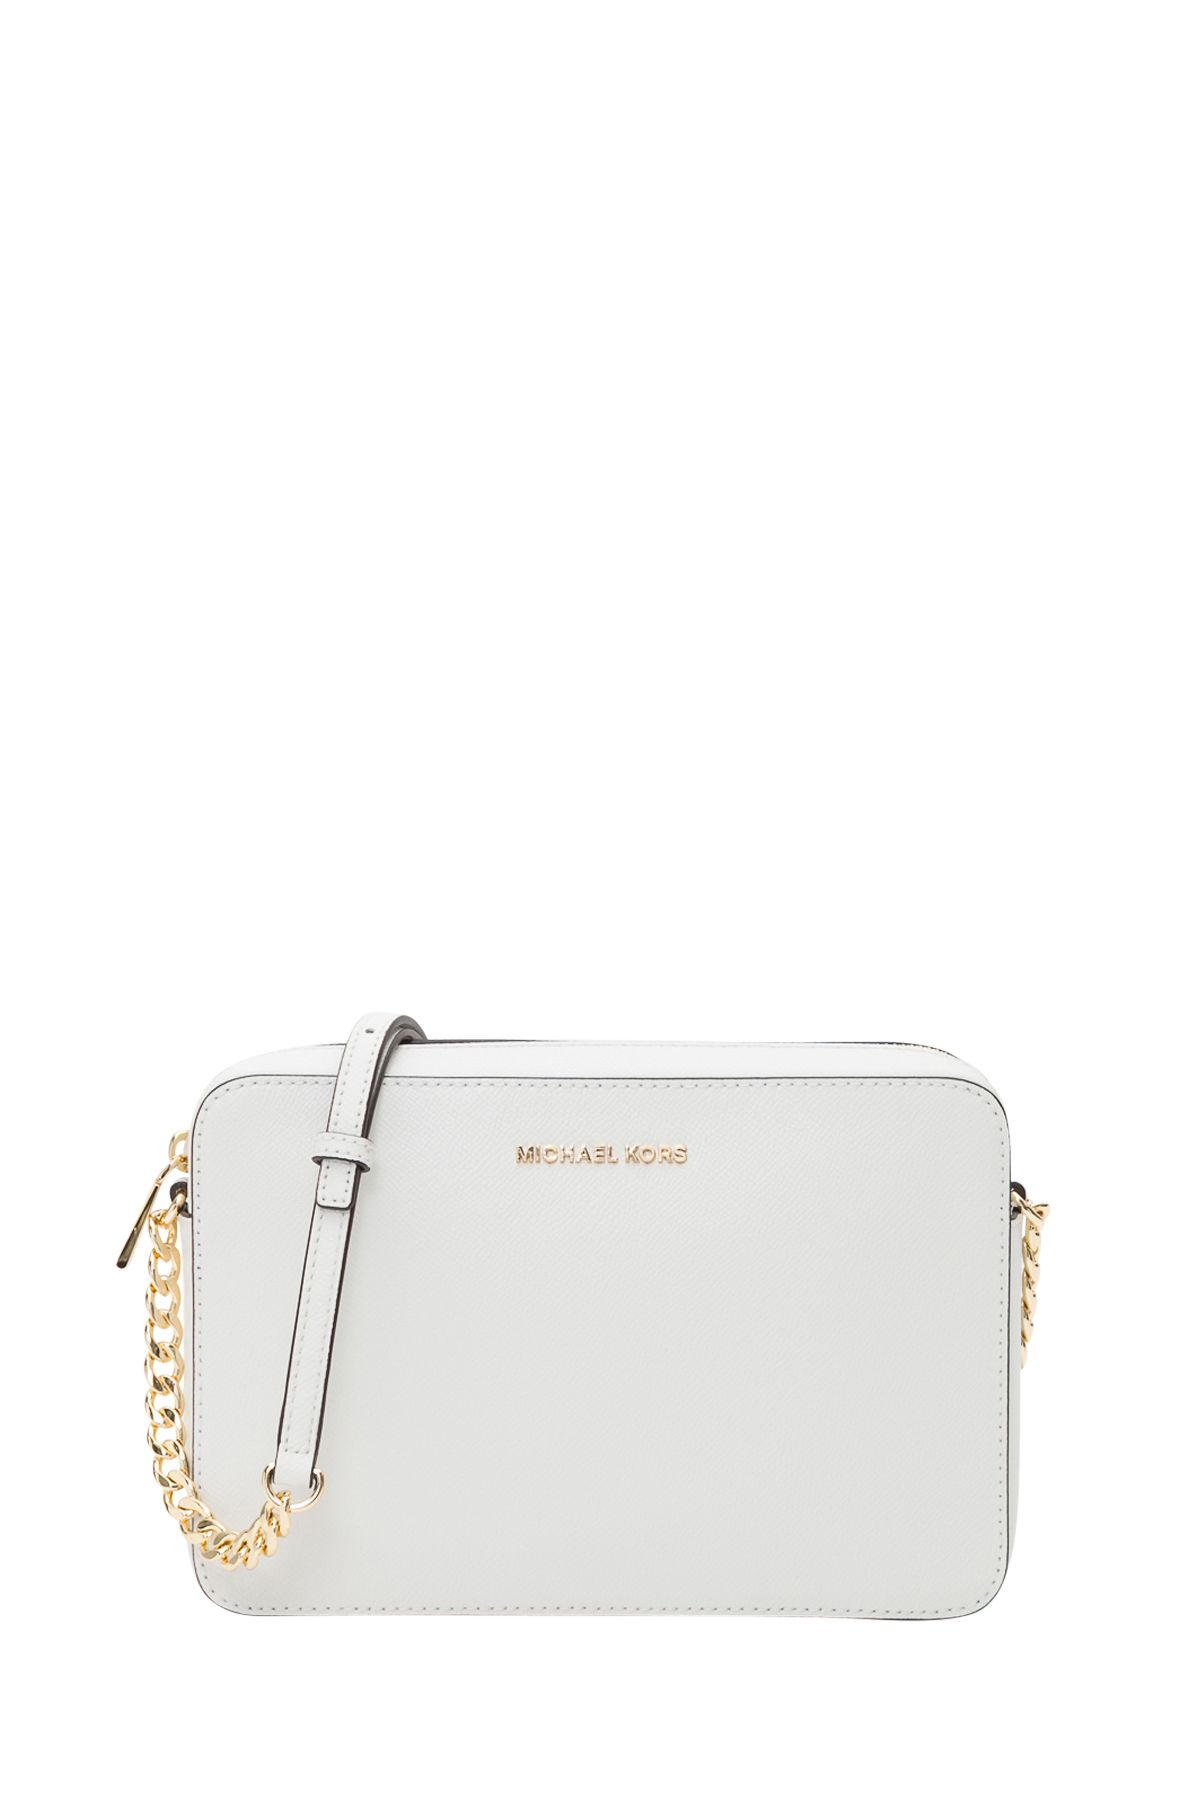 4b3964b3e3dfed MICHAEL Michael Kors Jet Set Travel Saffiano Leather Crossbody Bag - Bianco  ...